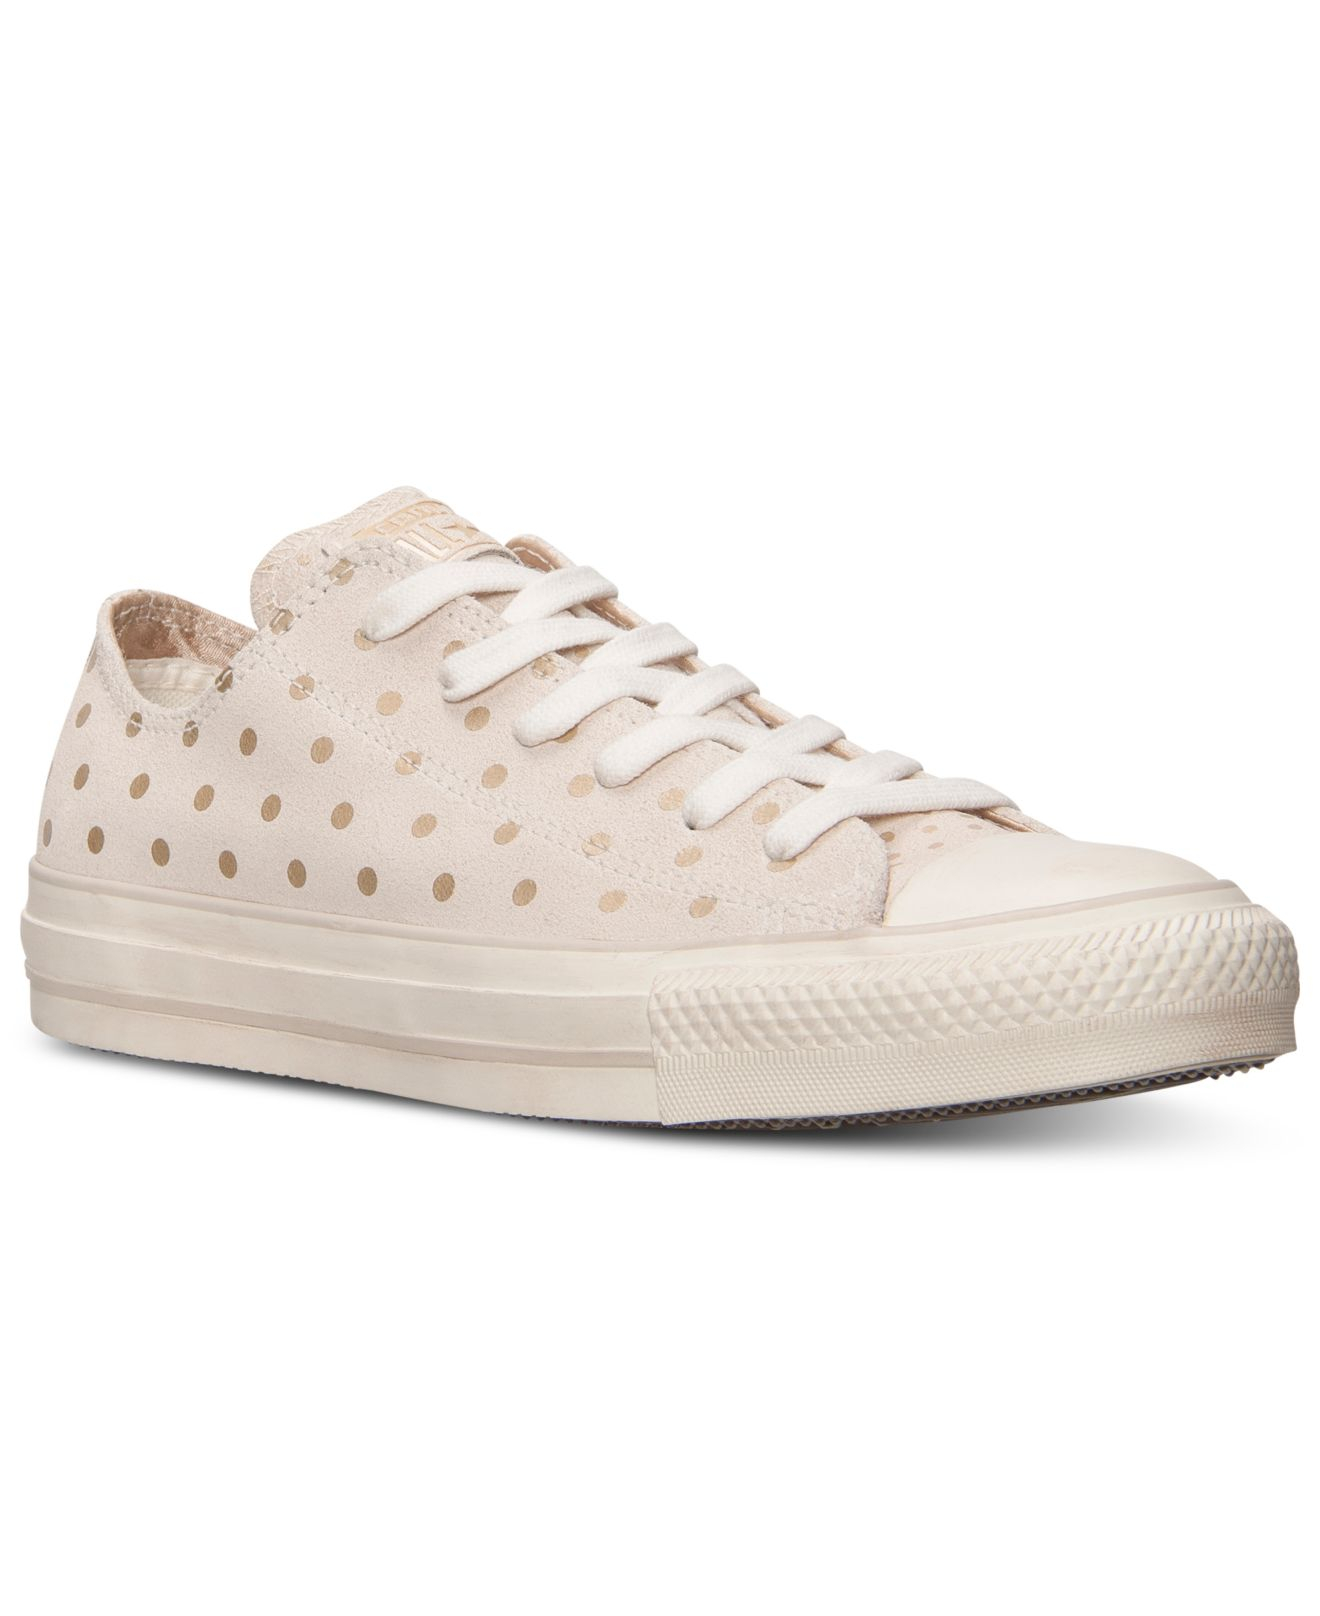 9d29e069971b29 Lyst - Converse Women S Chuck Taylor Ox Printed Suede Casual Shoes ...